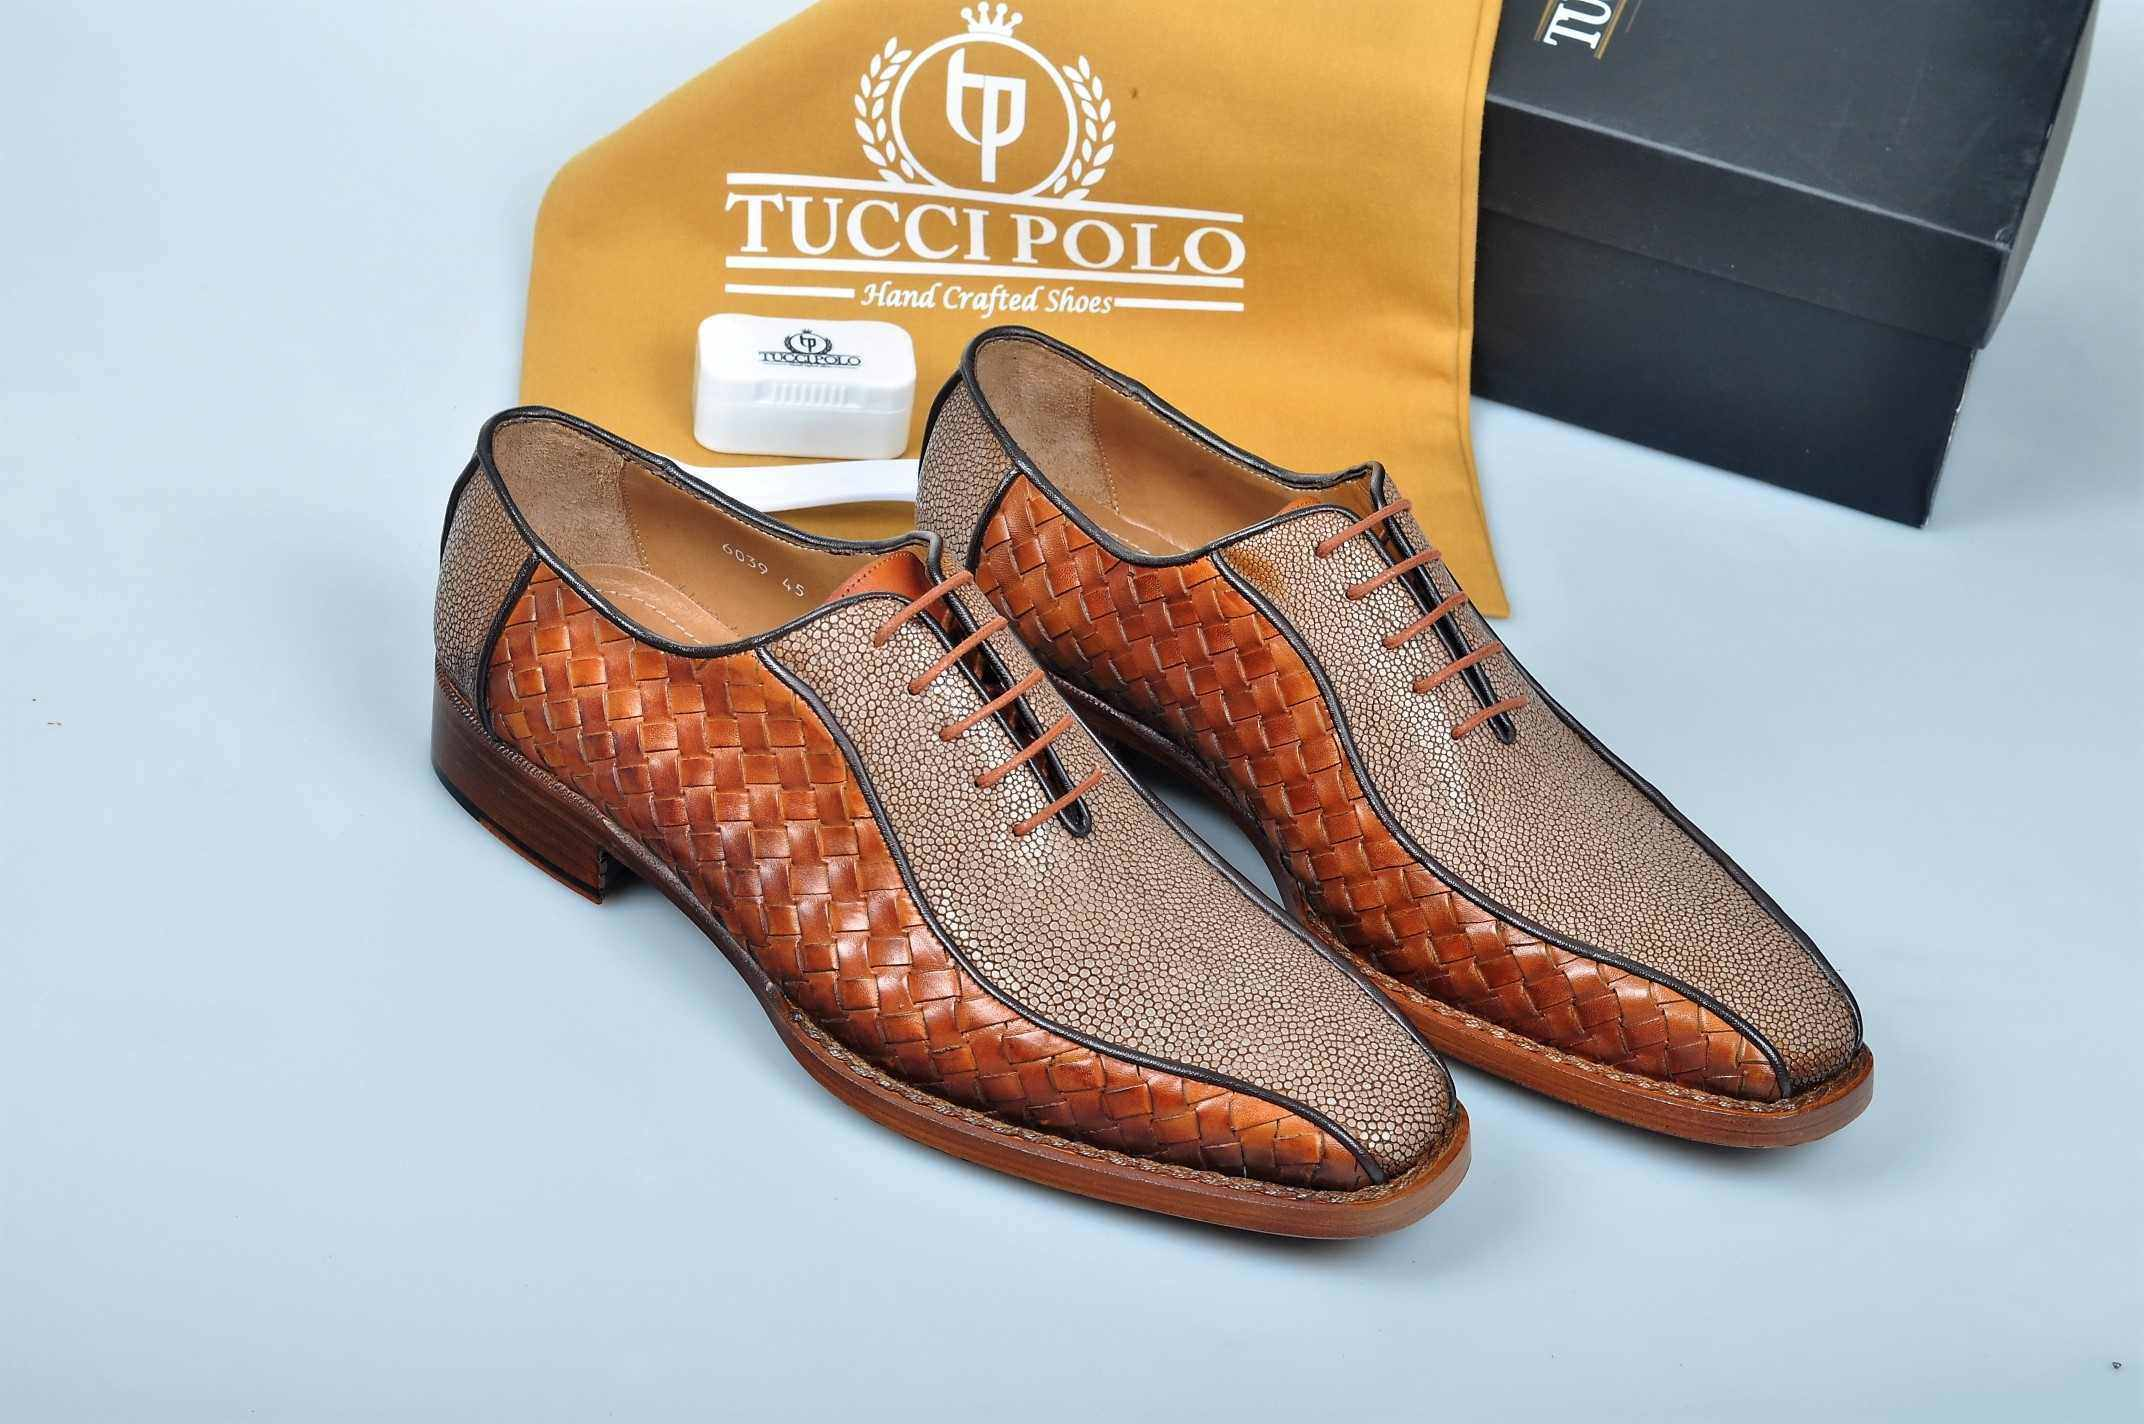 Special Edition TucciPolo Half Genuine Orange Stingray with Weave Leather Prestigiously HandWelted Oxford Mens Luxury Shoes